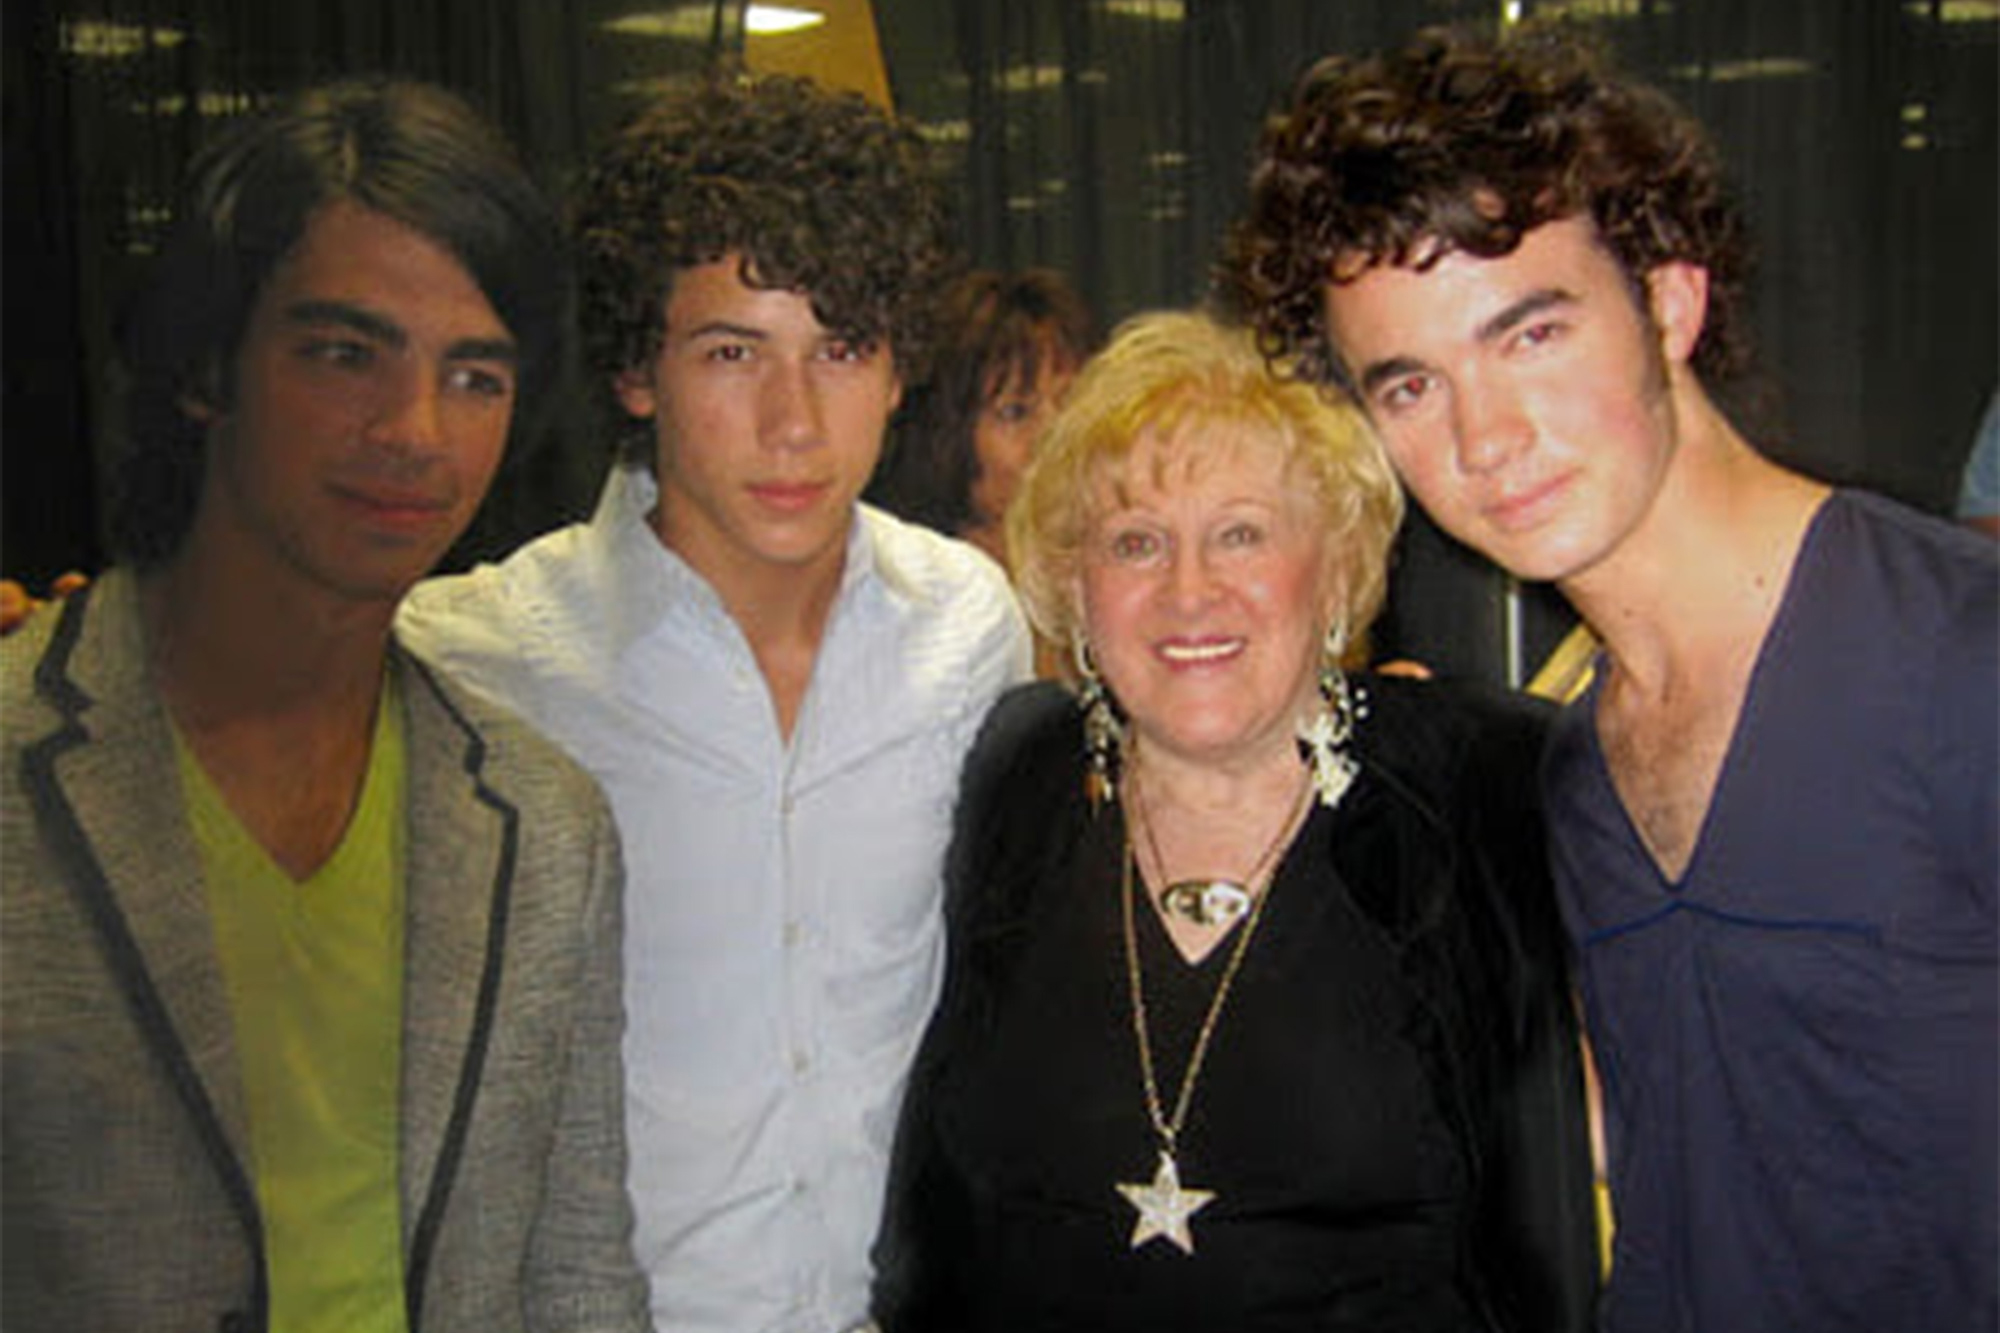 Shirley Grant, talent agent who launched Jonas Brothers, has died